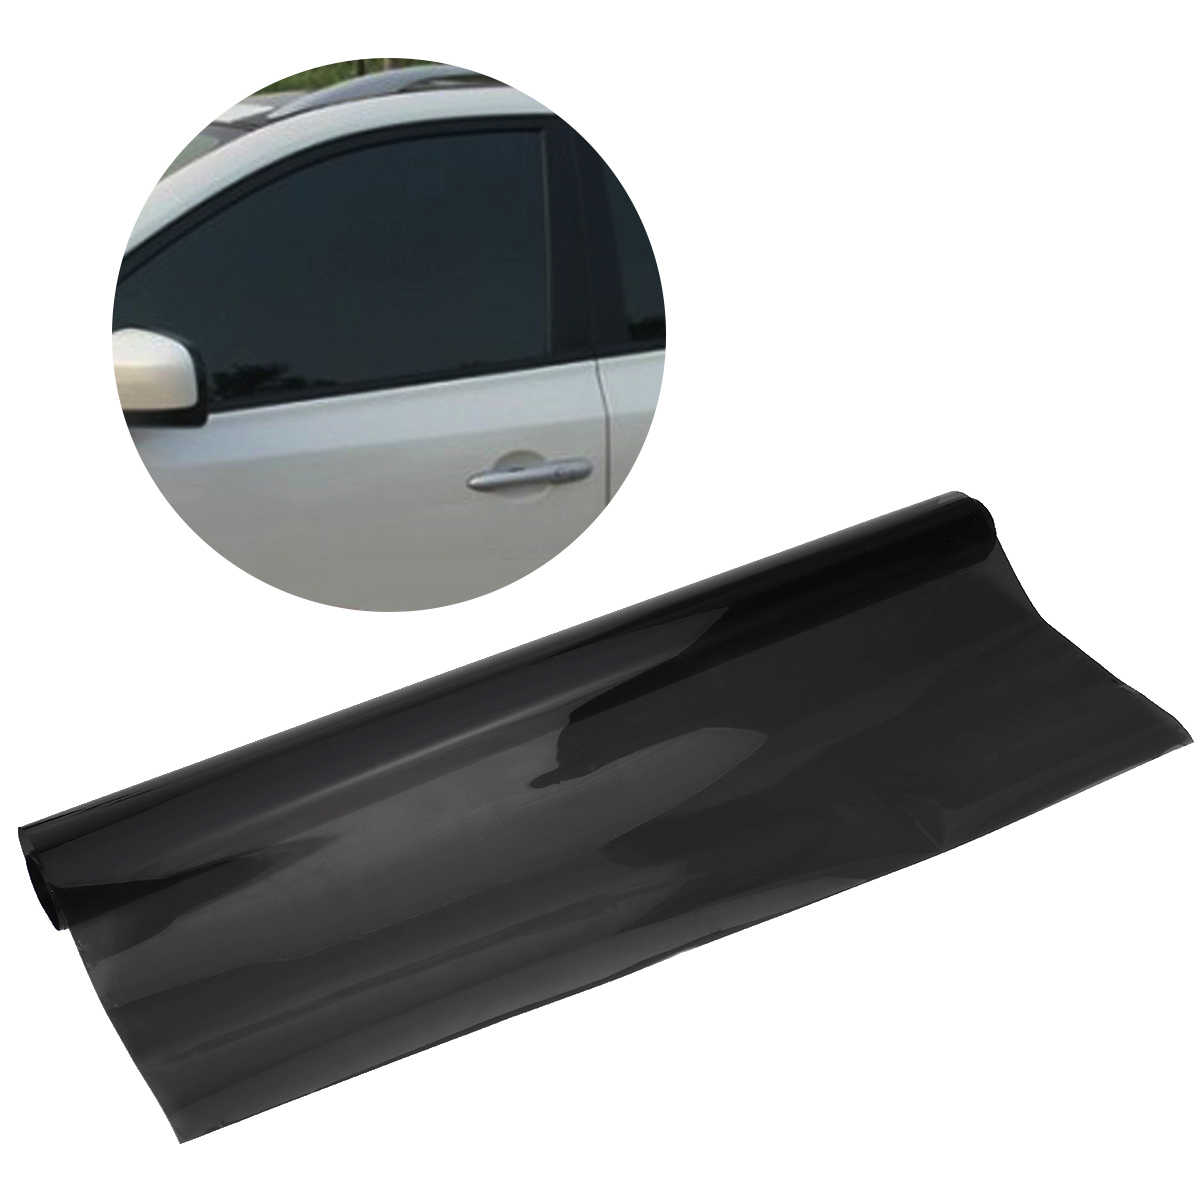 75cmx6M Car Van Window Tint Film Universal Fit for Privacy Sun Glare Heat Reduction